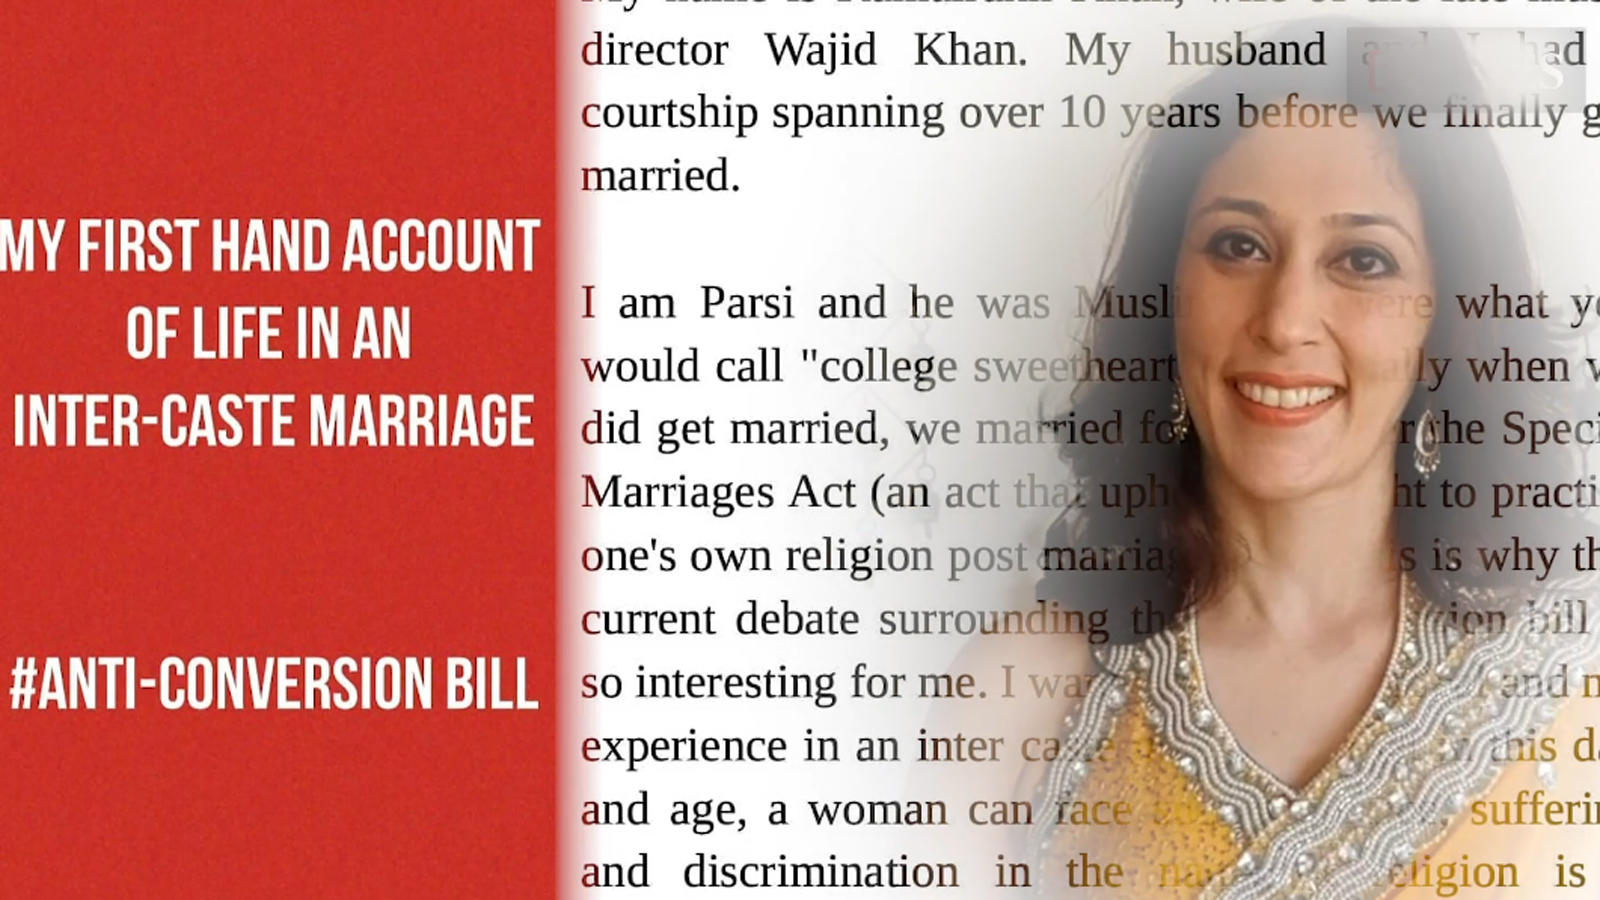 late-wajid-khans-wife-kamalrukh-khan-on-why-she-is-compelled-to-speak-out-now-no-woman-should-have-to-face-what-i-have-faced-during-these-17-years-of-marriage